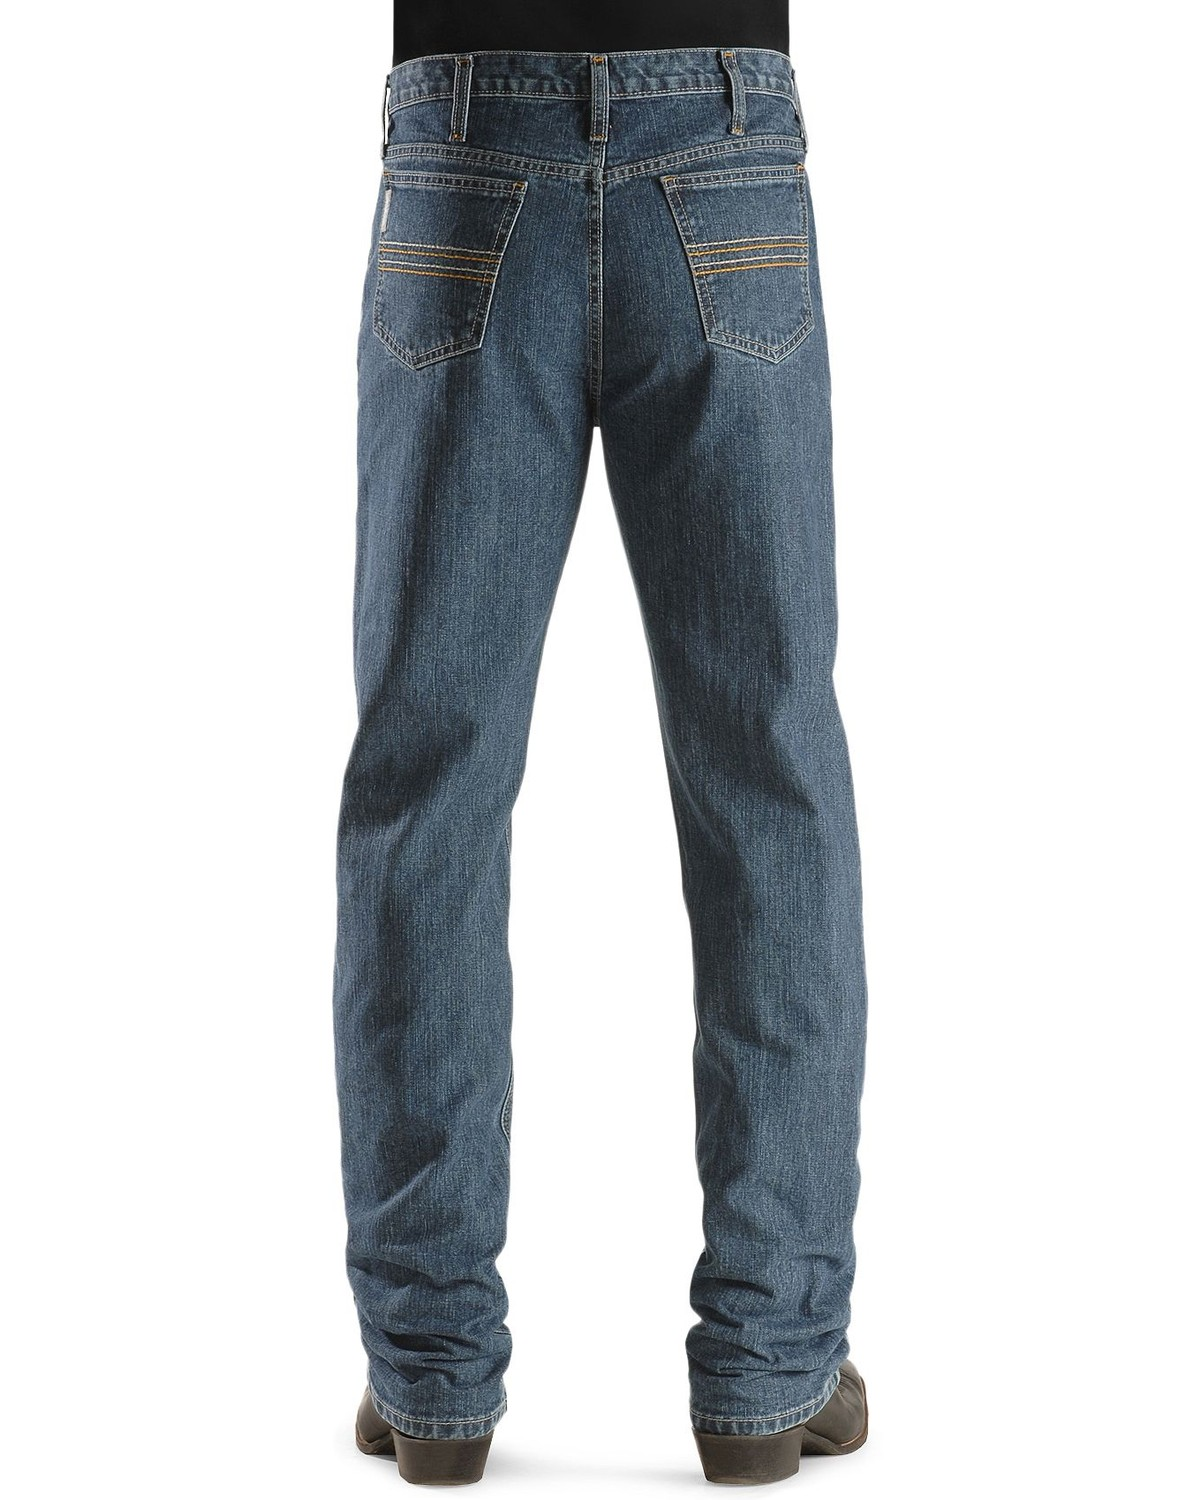 Cinch Silver Label Straight Leg Jeans - Big & Tall - Country Outfitter